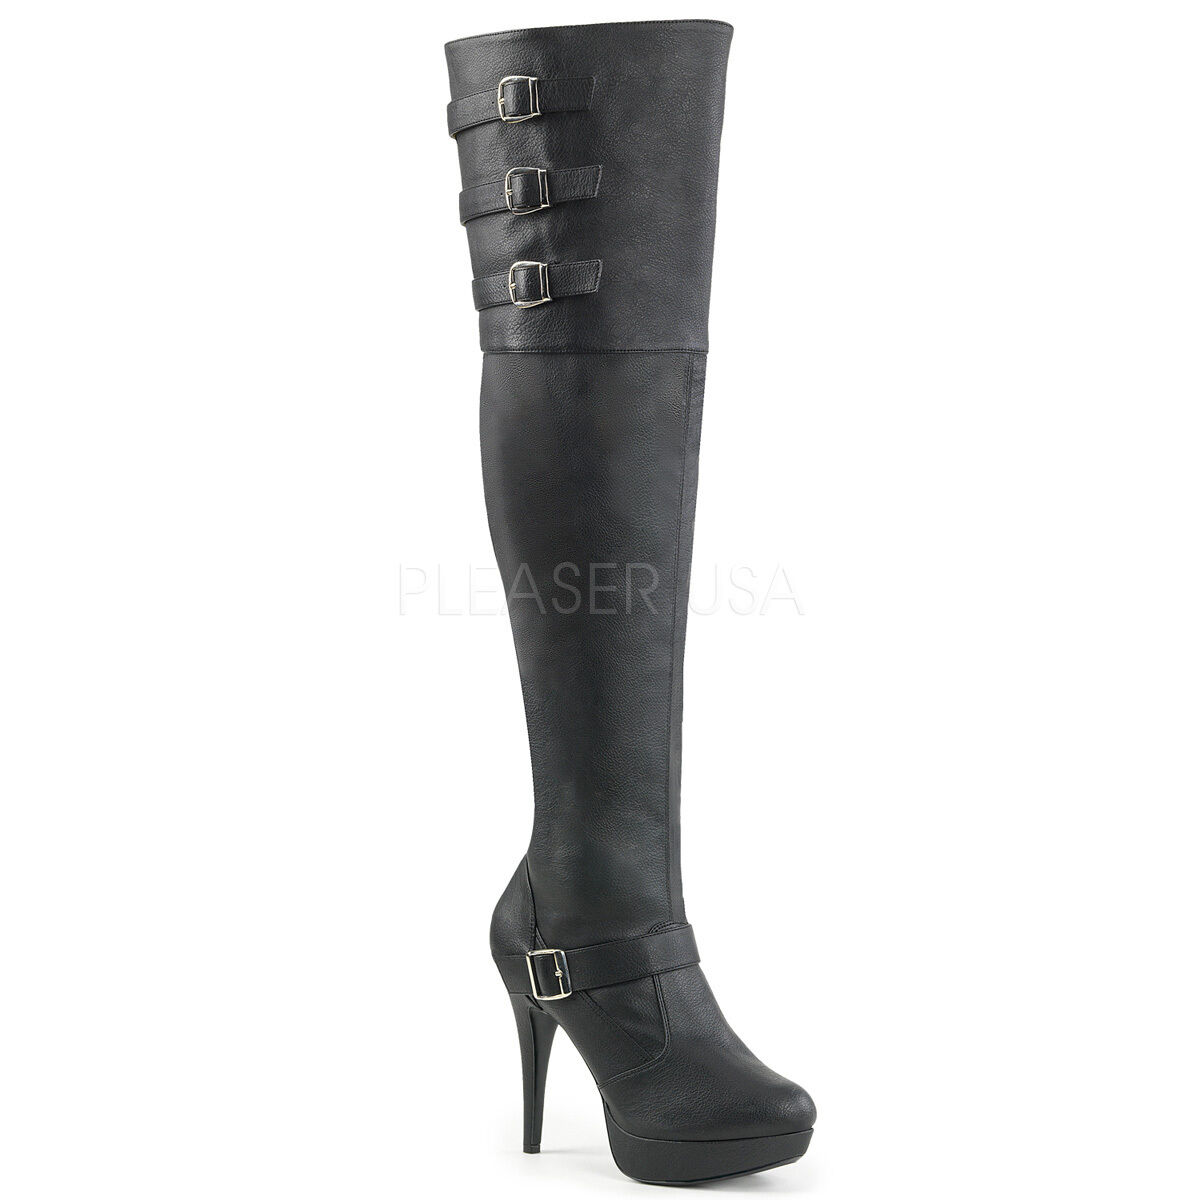 Black Thigh High Over the Knee Leather Platform Boots Womans